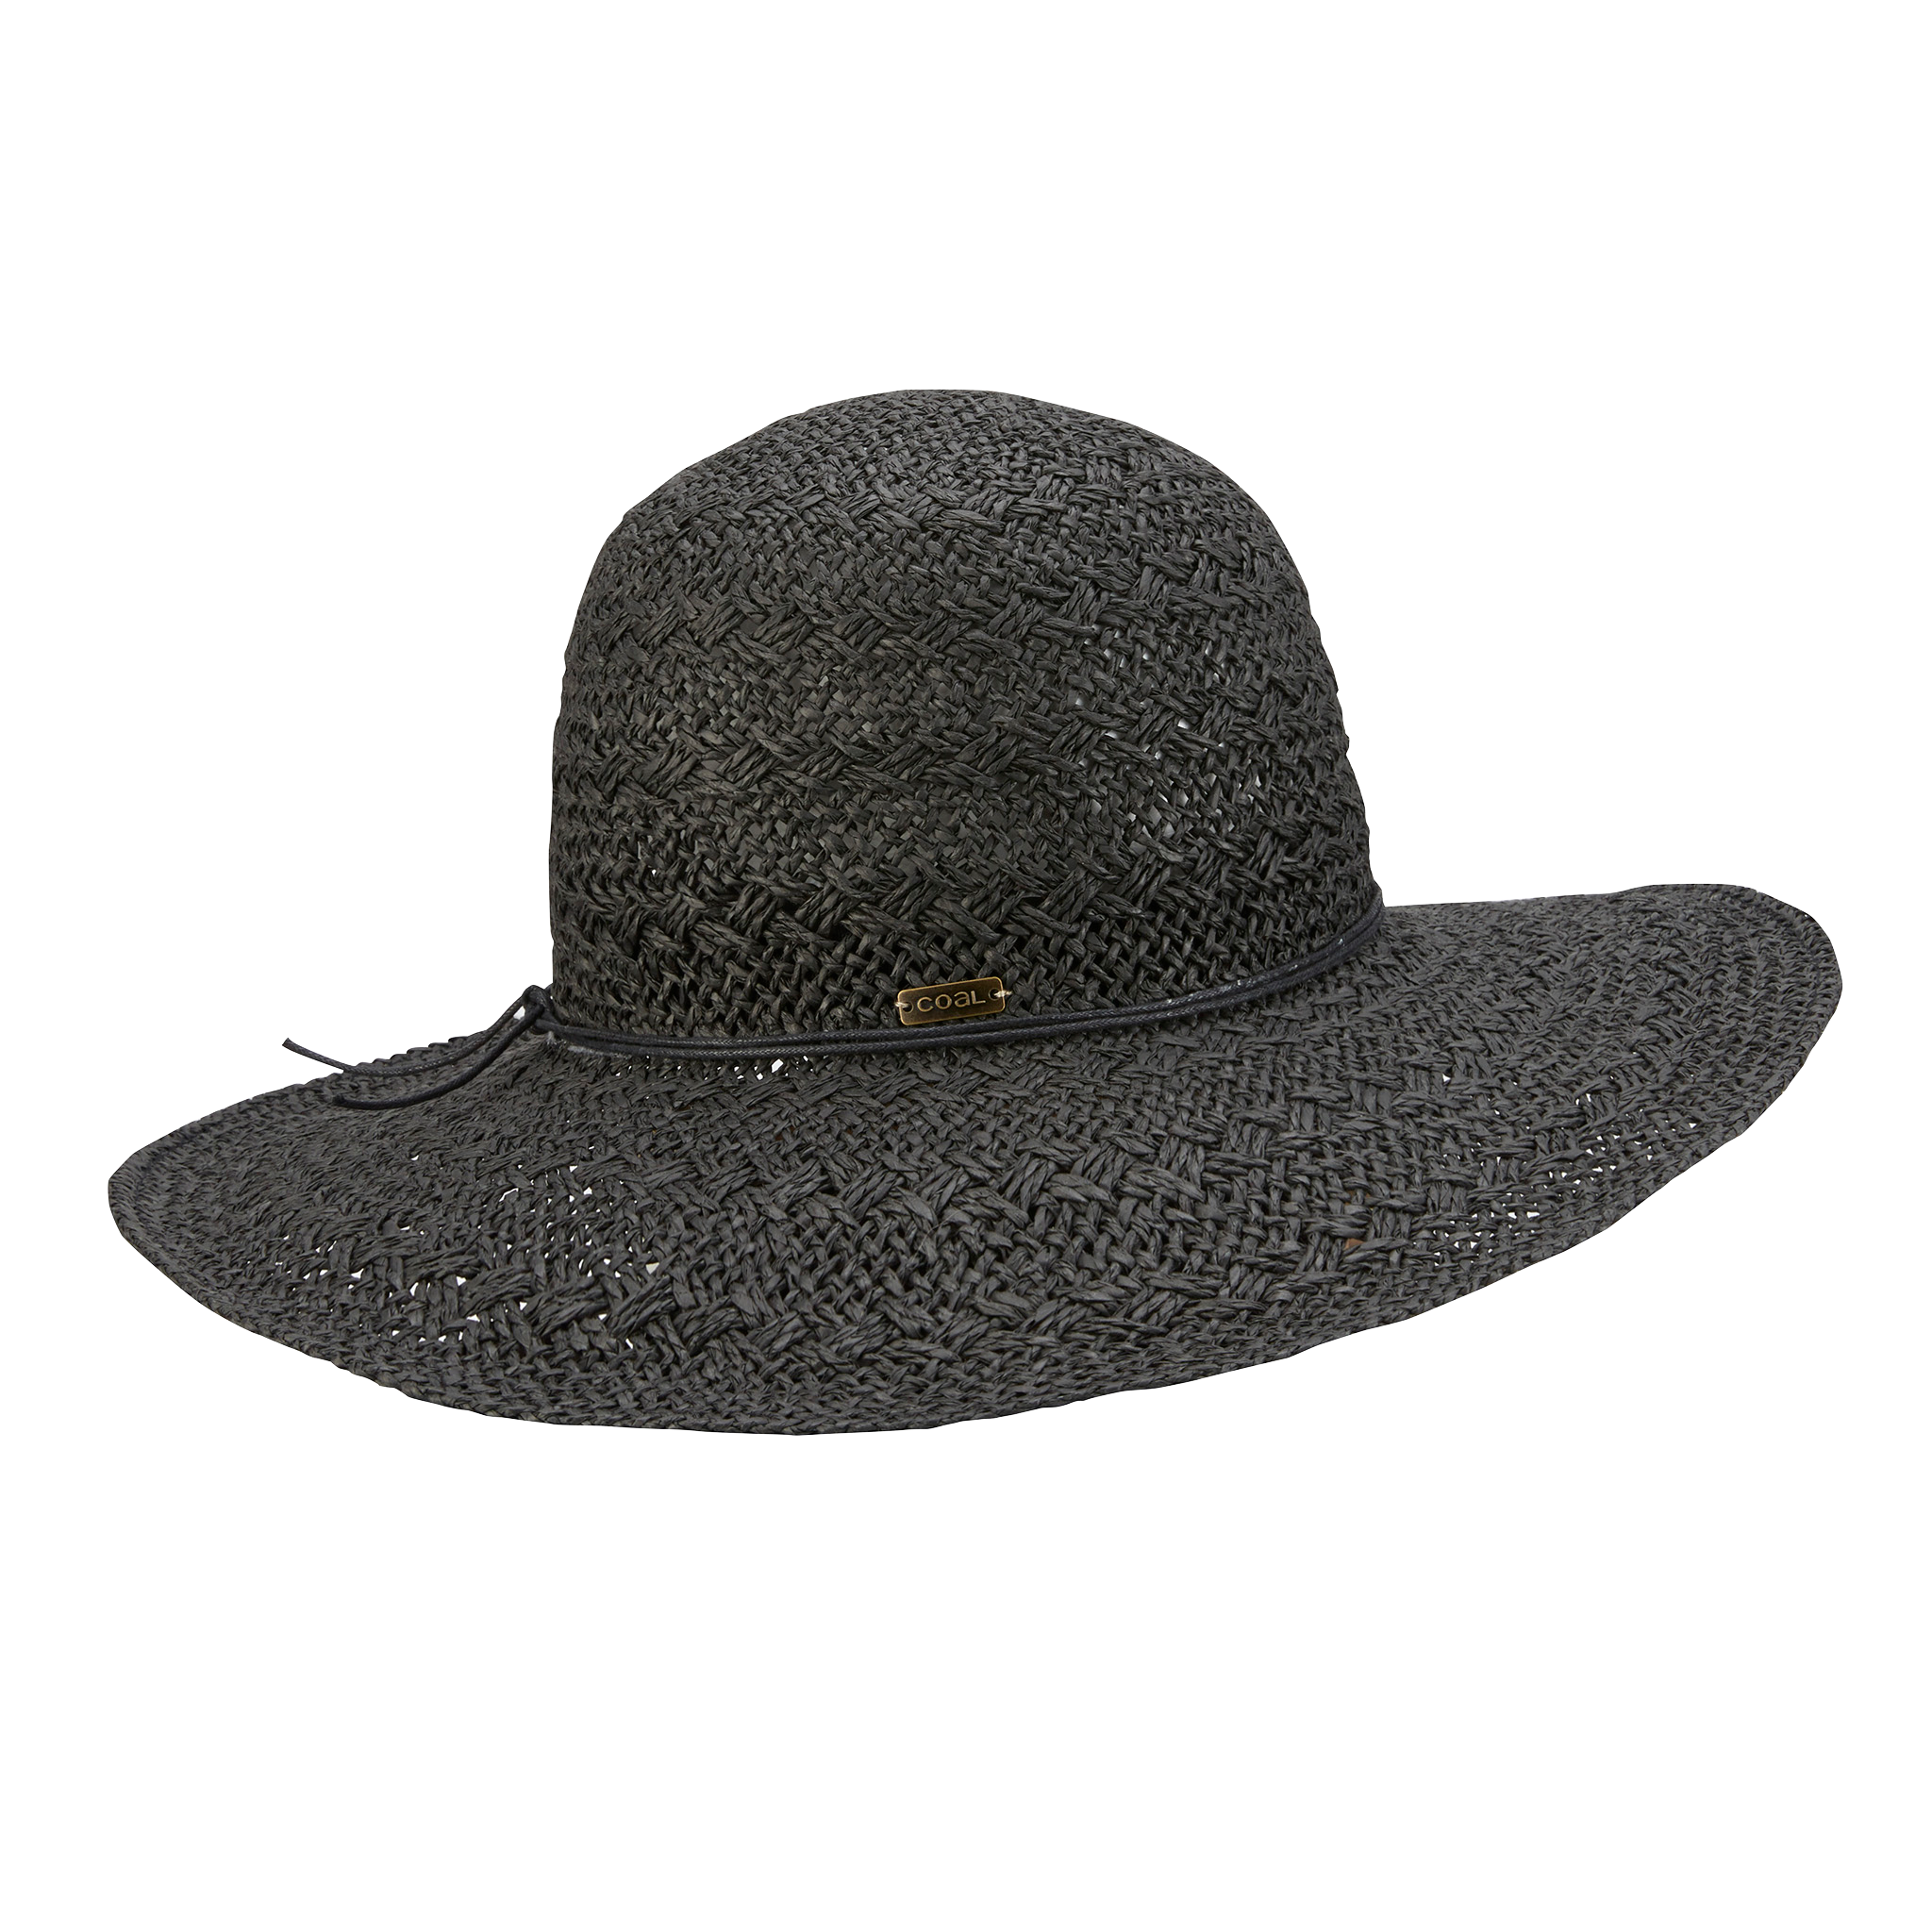 NOWY KAPELUSZ COAL THE PIPER HAT BLACK ROZMIAR S